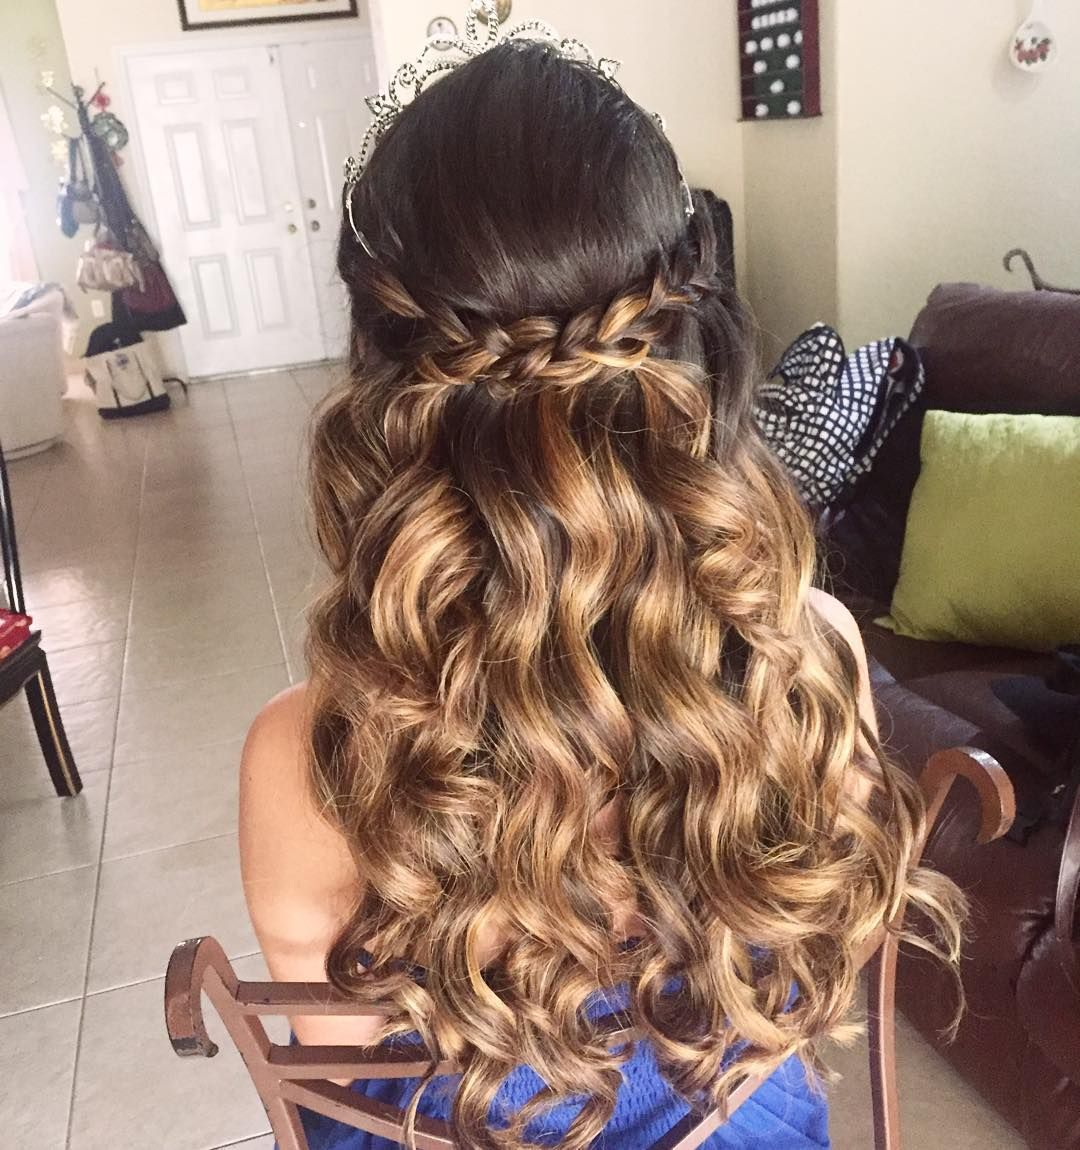 20 Absolutely Stunning Quinceanera Hairstyles With Crown Quinceanera Quince Hairstyles Birthday Hairstyles Quinceanera Hairstyles